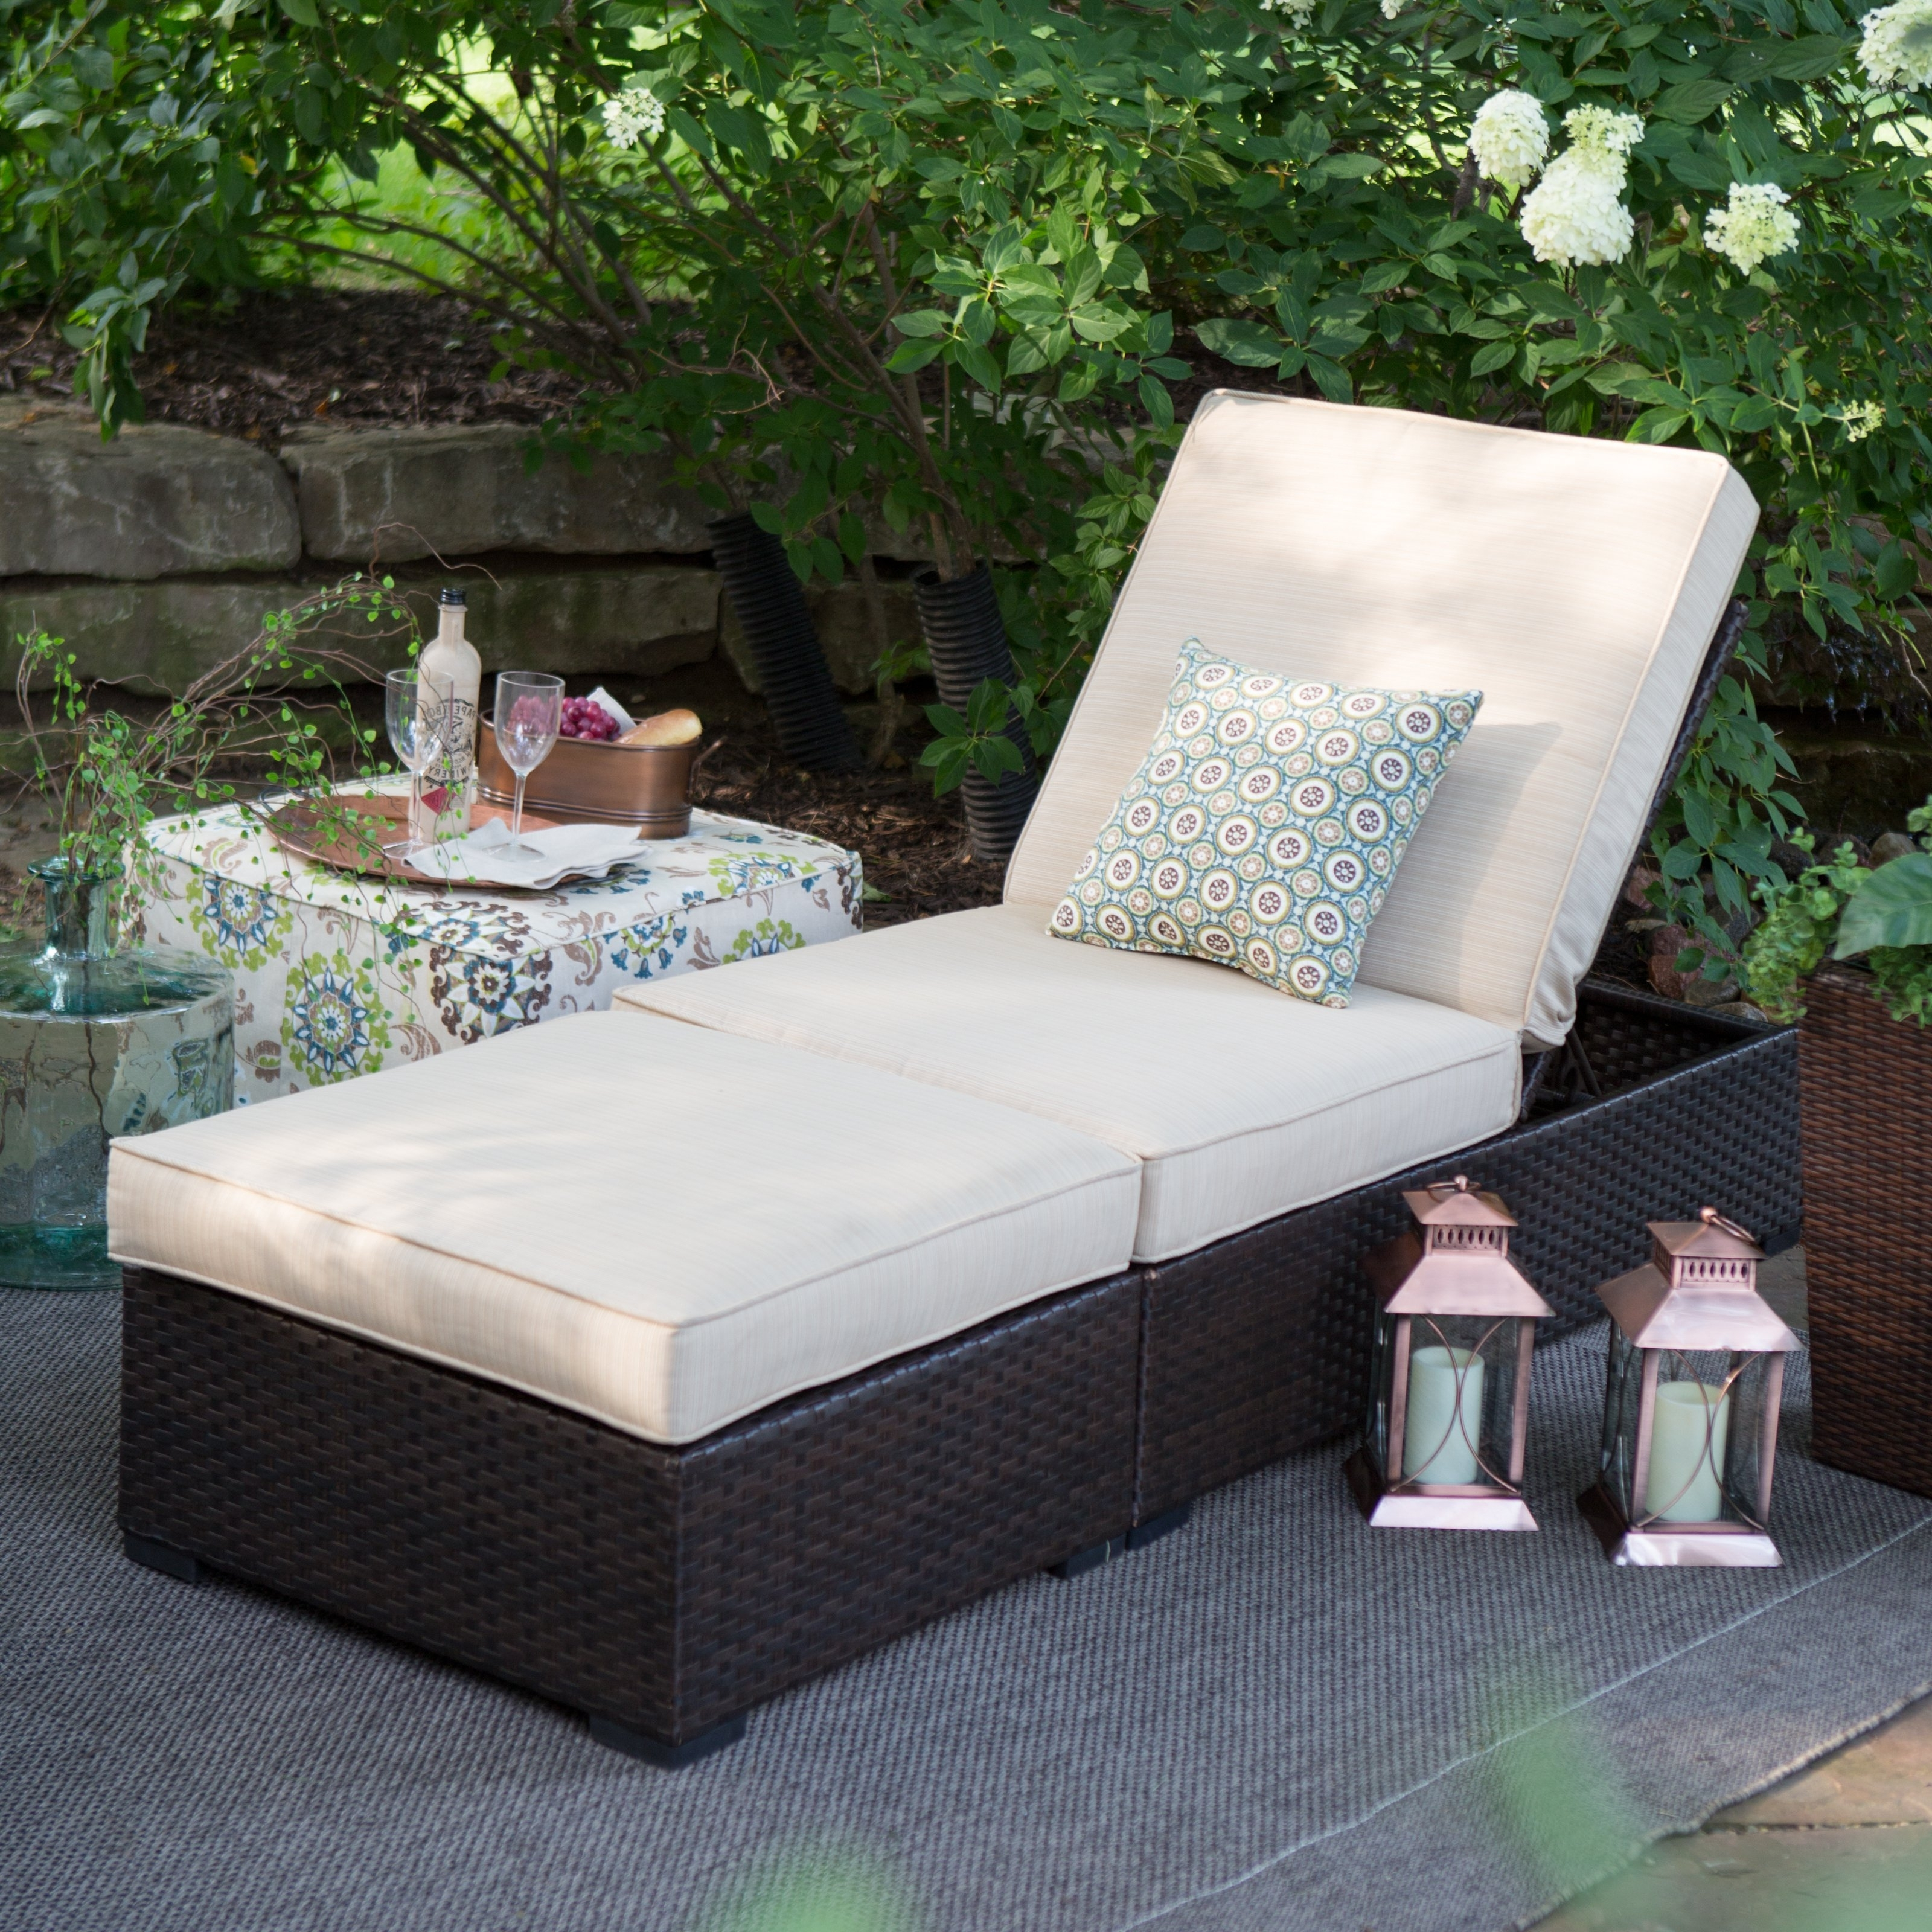 Most Popular Belham Living Marcella Wide Wicker Chaise Lounge With Ottoman For Wicker Chaise Lounge Chairs For Outdoor (View 5 of 15)